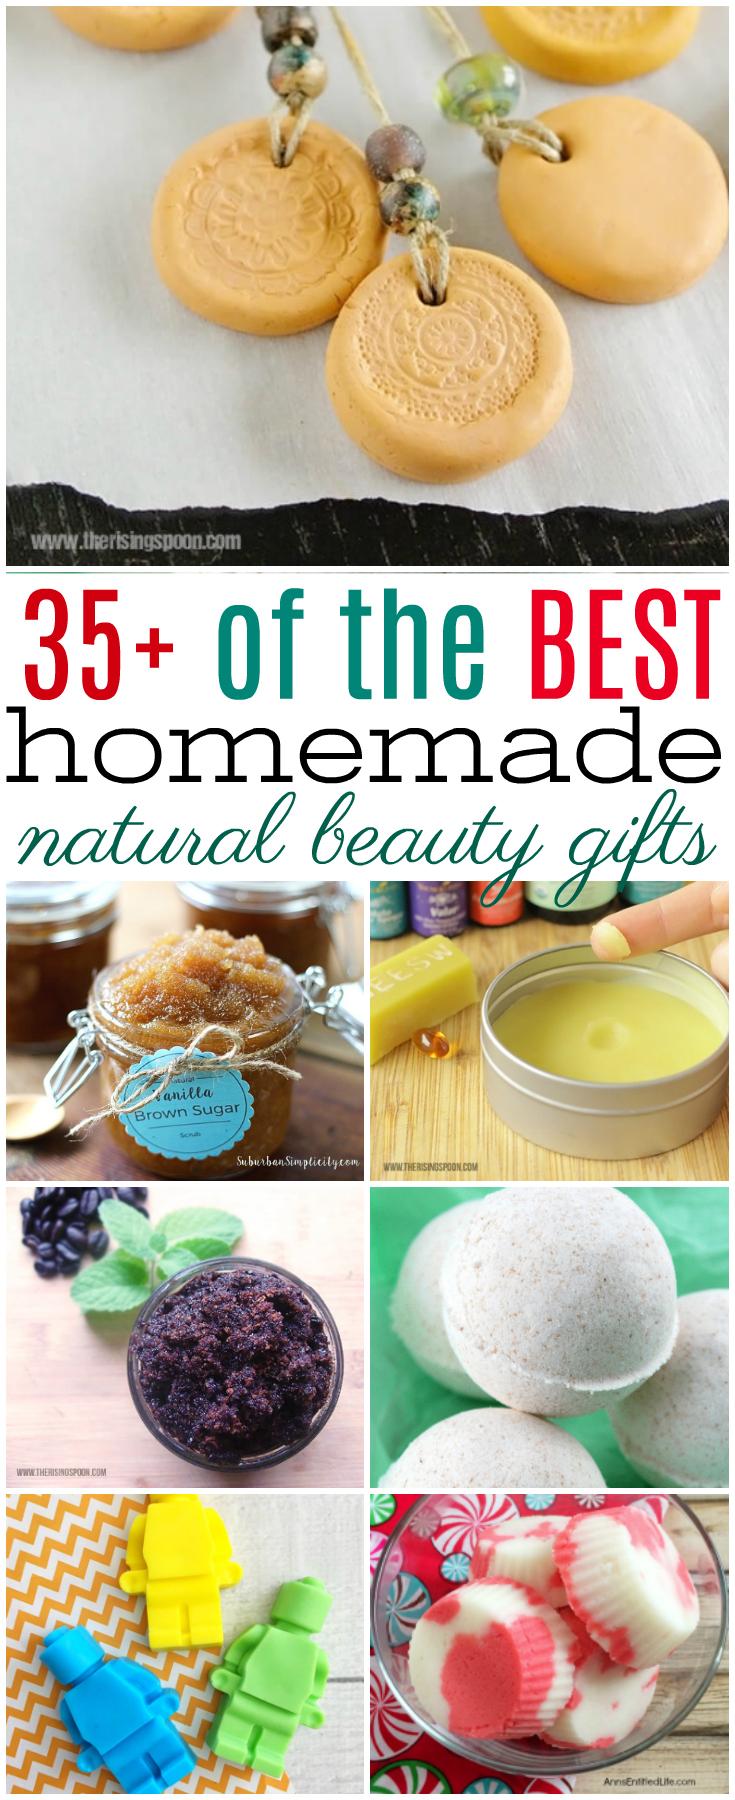 Some of the best gifts are those that are made at home. Here are over 35 of the BEST homemade natural beauty gift ideas. #essentialoils #gifts #homemade #DIY #beauty